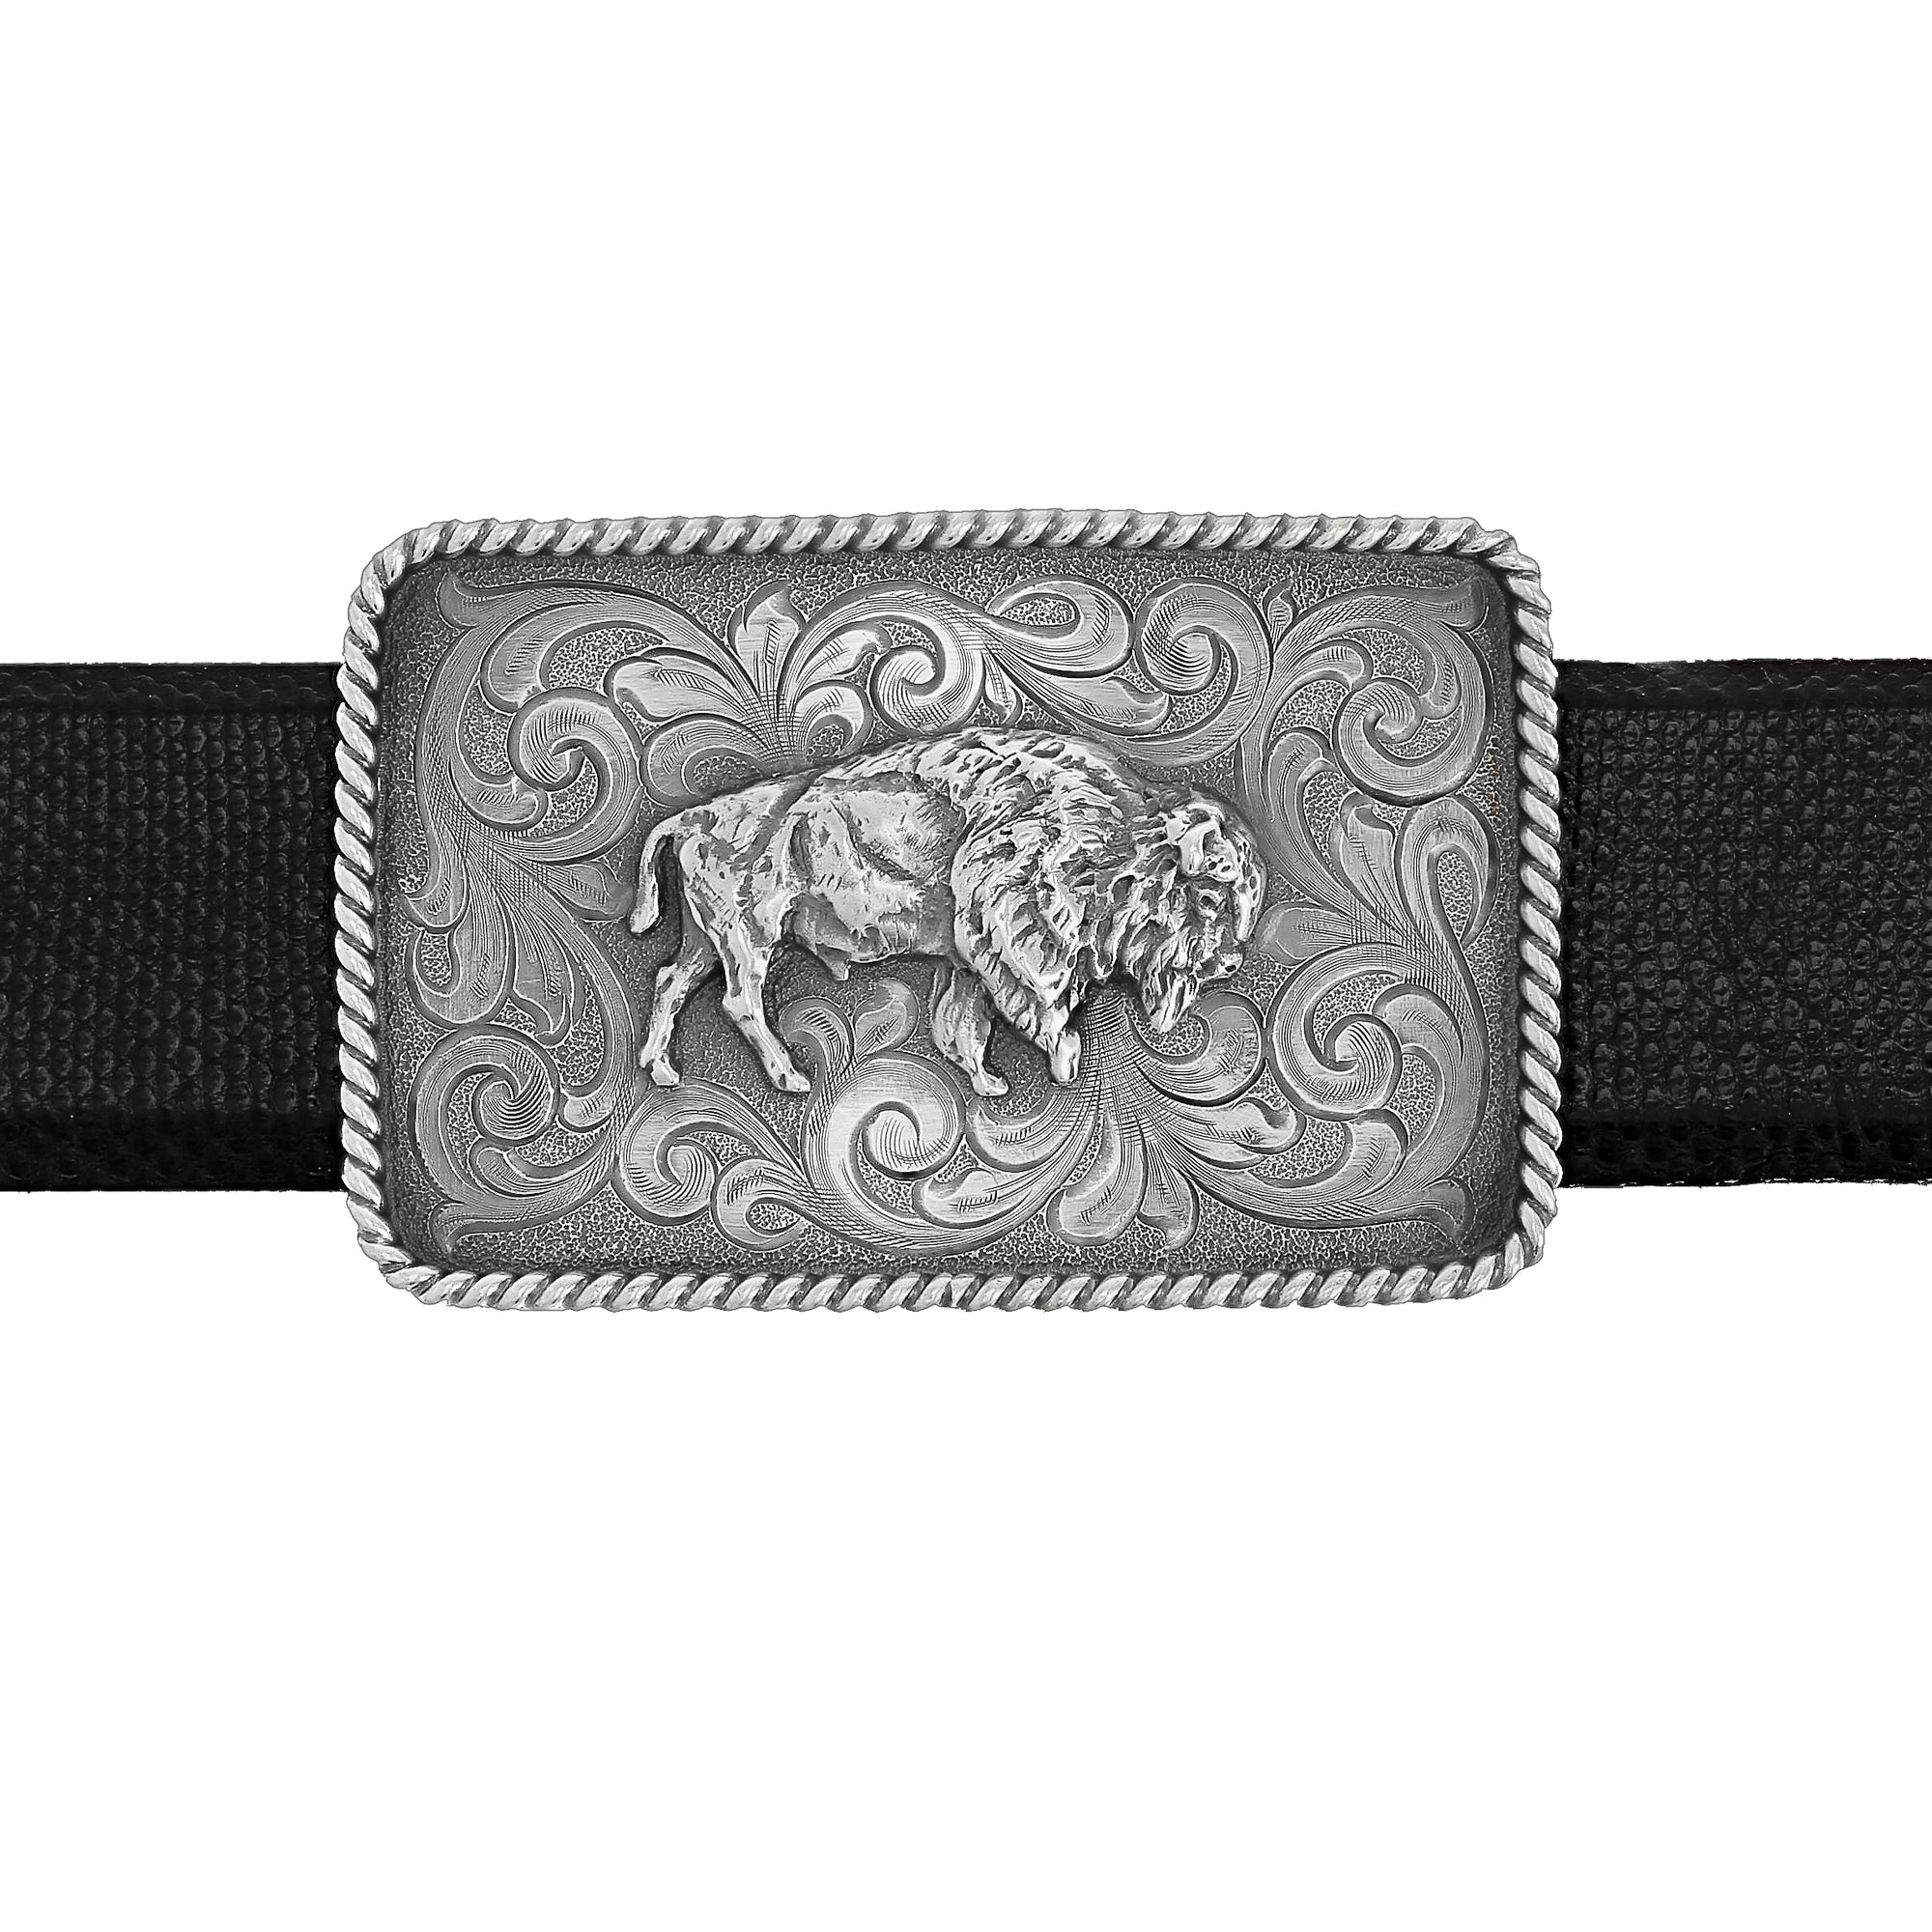 Bowie 2000 Sterling Trophy Buckle with Buffalo